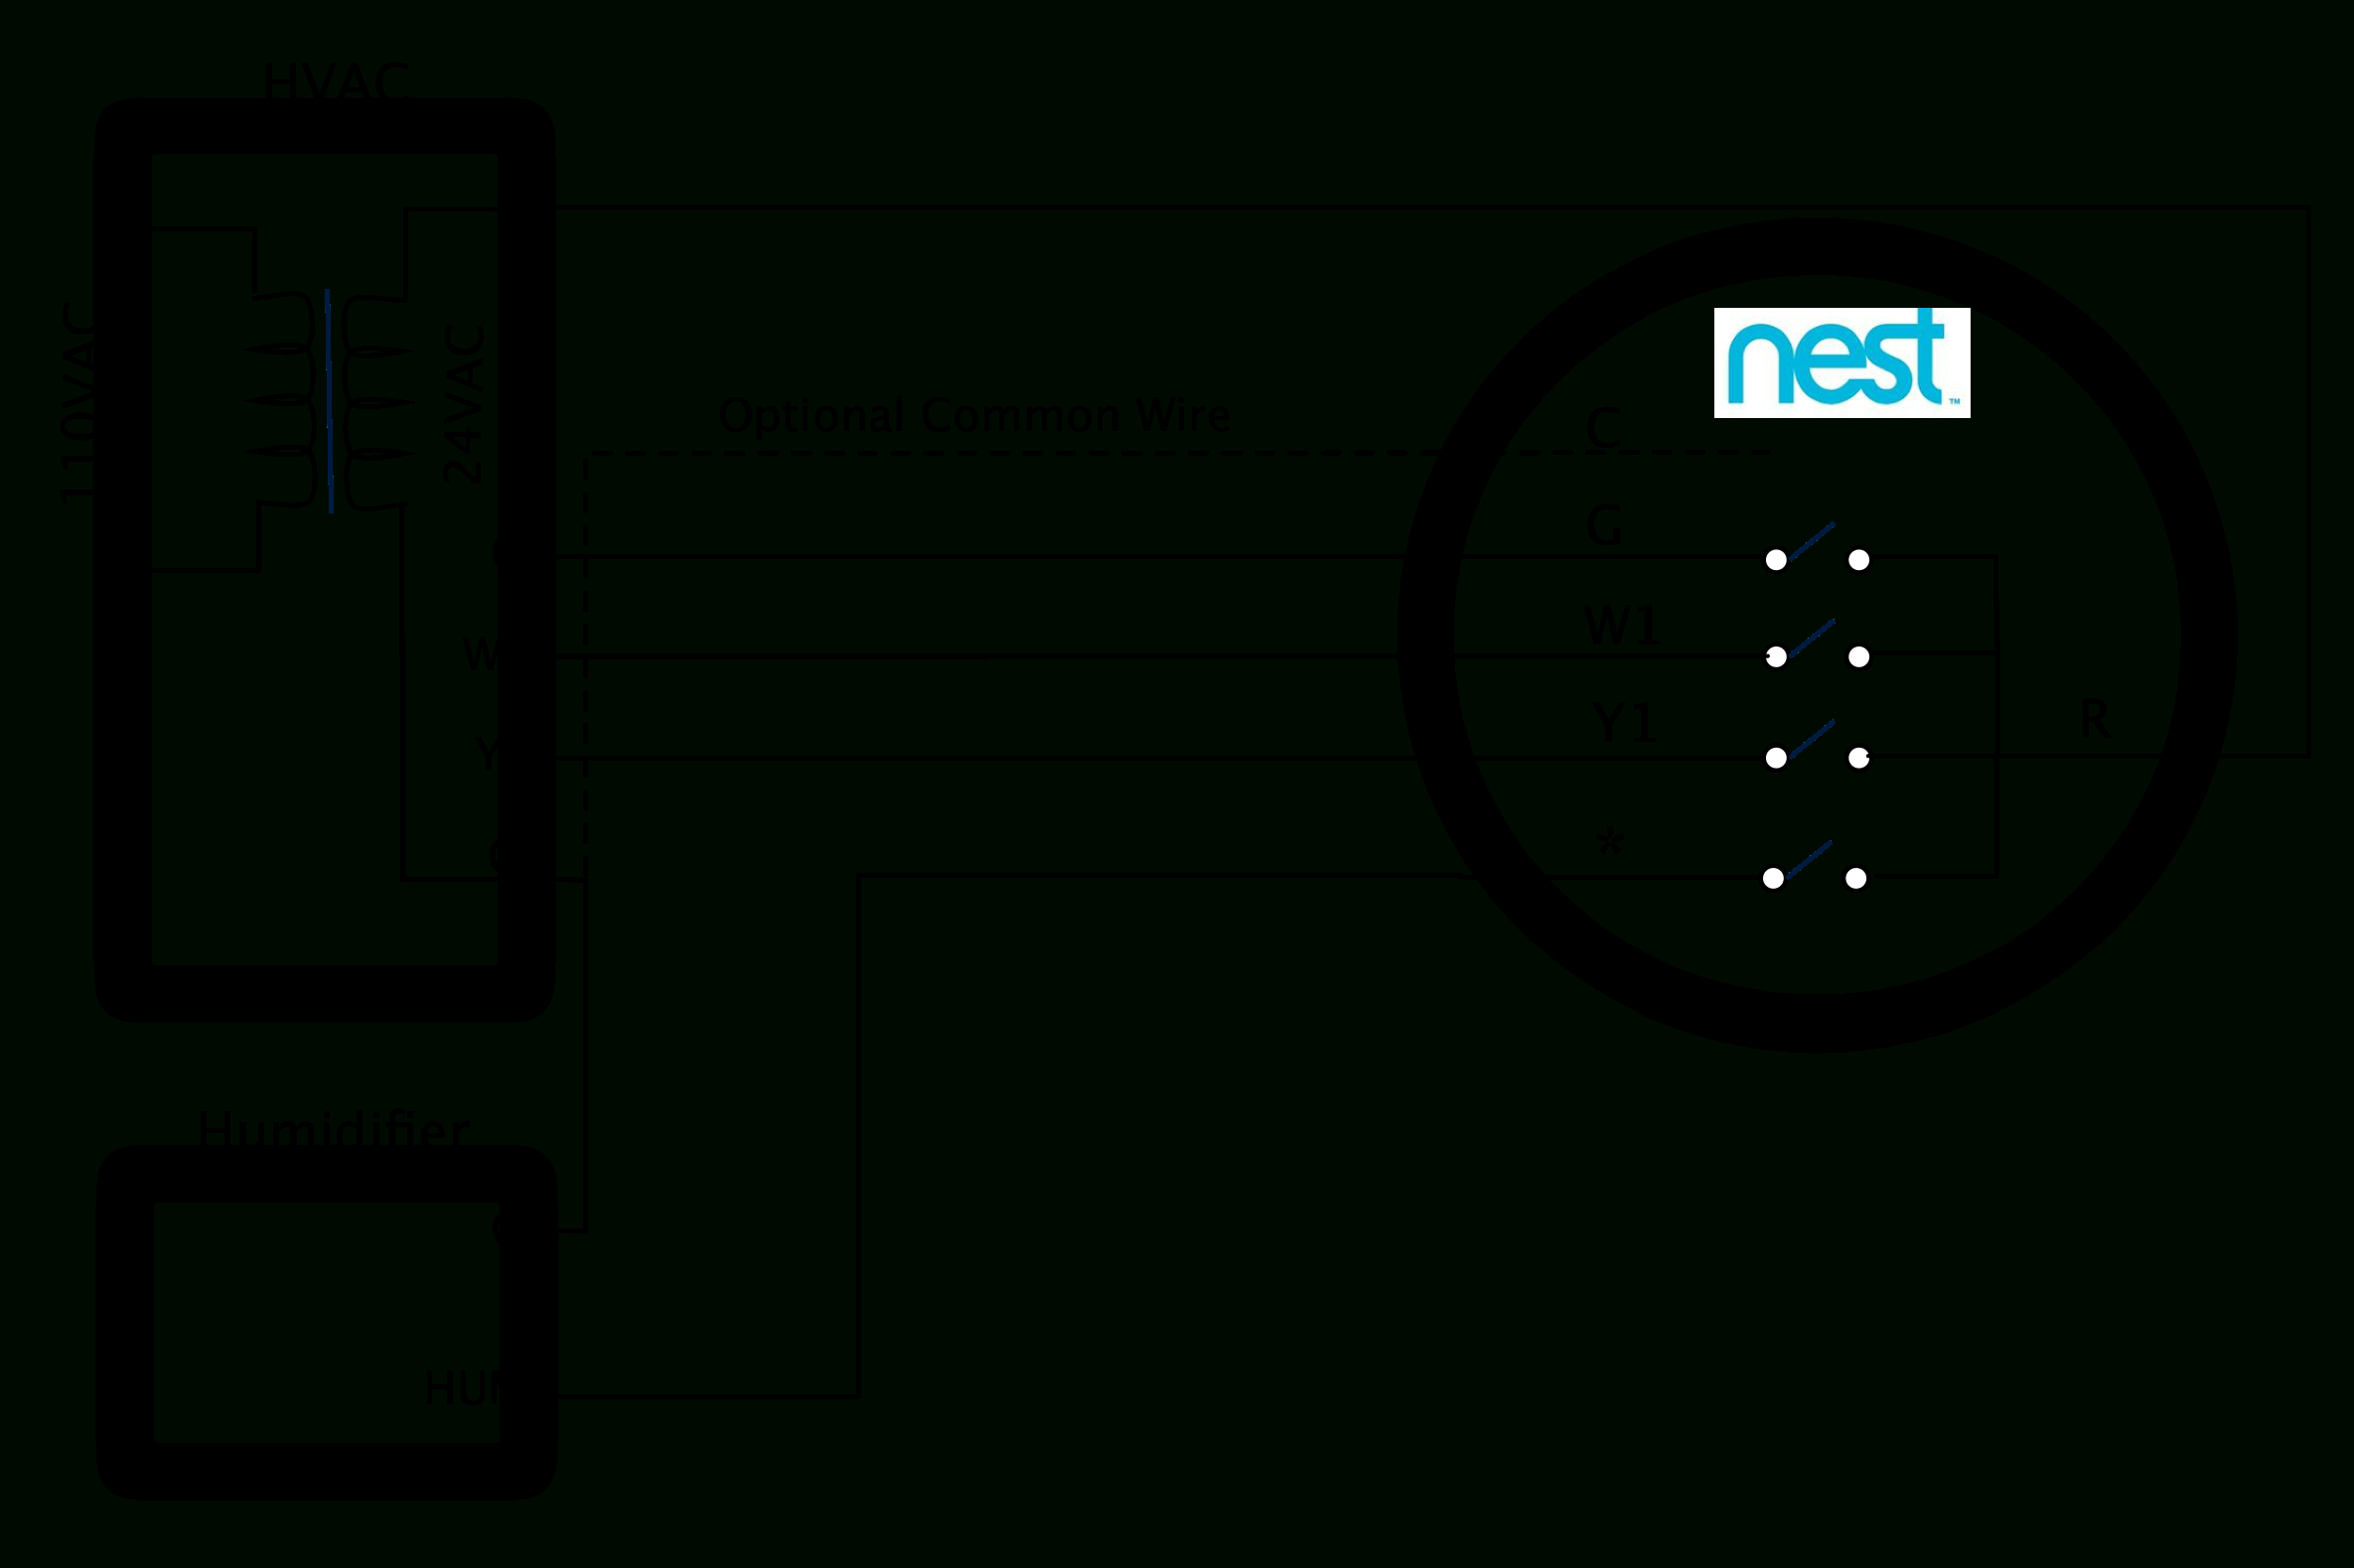 Nest C Wire Diagram - Data Wiring Diagram Today - Nest Humidifier Wiring Diagram No C Wire